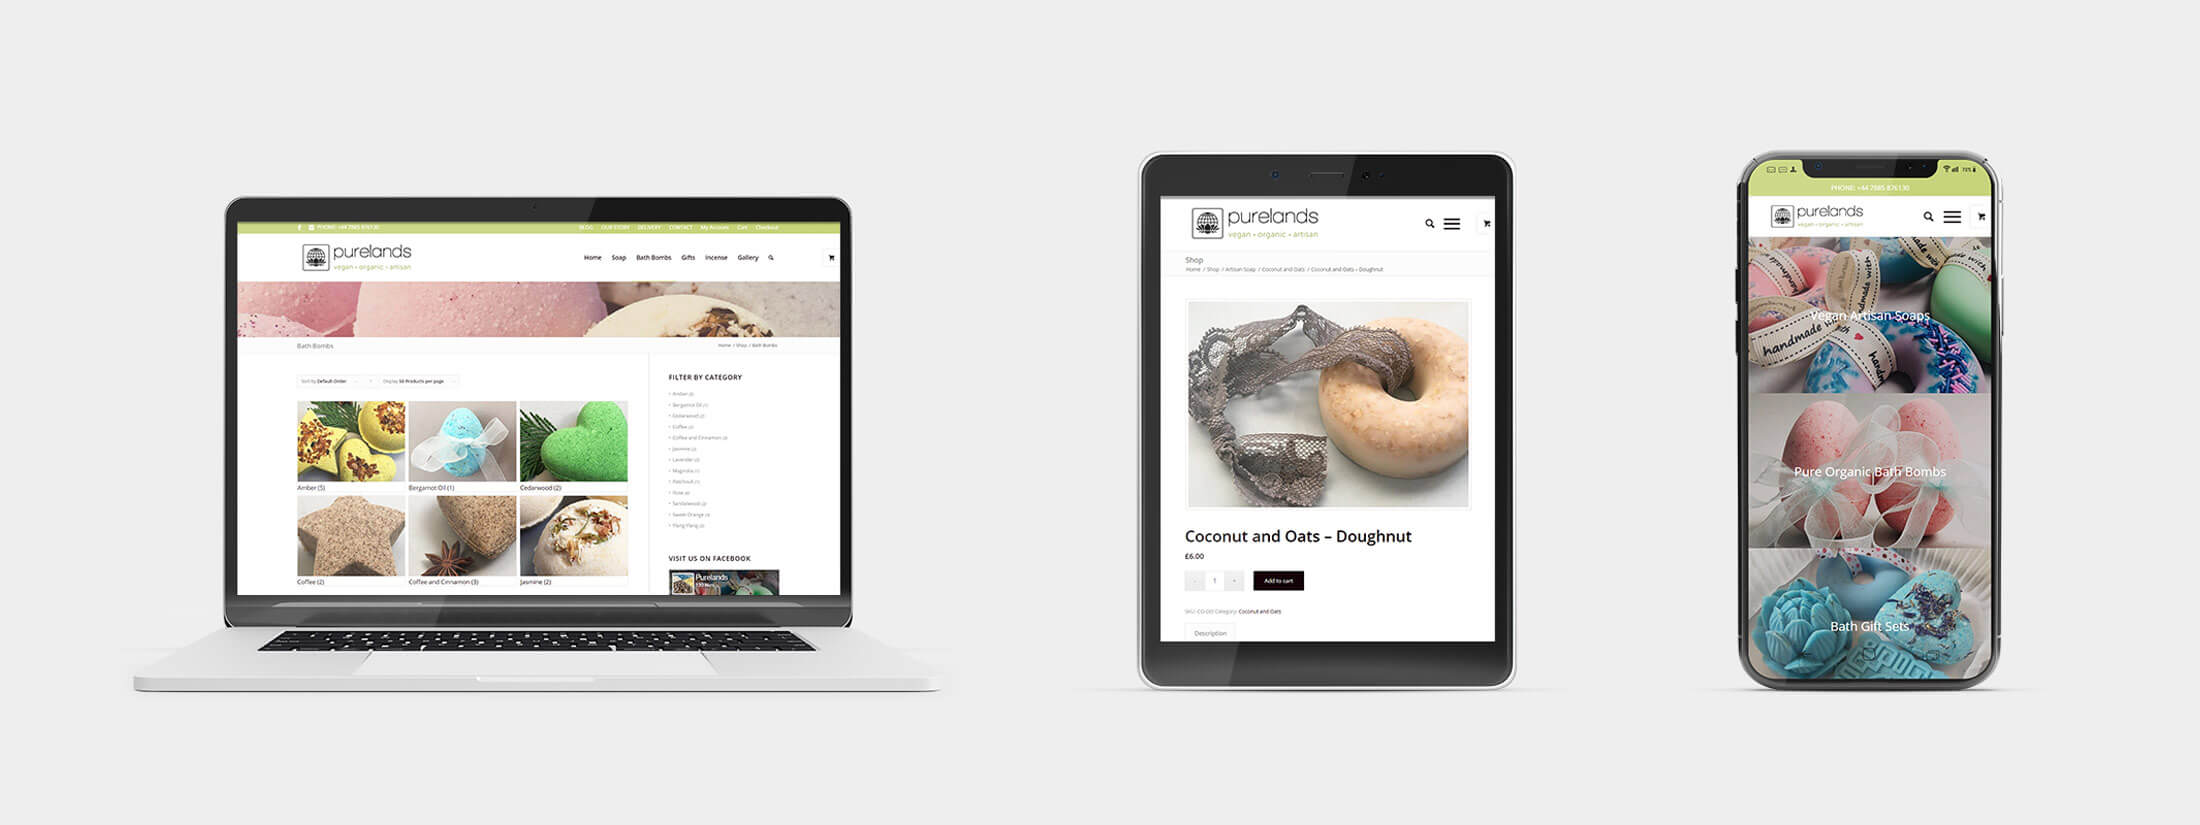 Purelands Vegan Gifts - Responsive Web Design Layouts on Various Devices